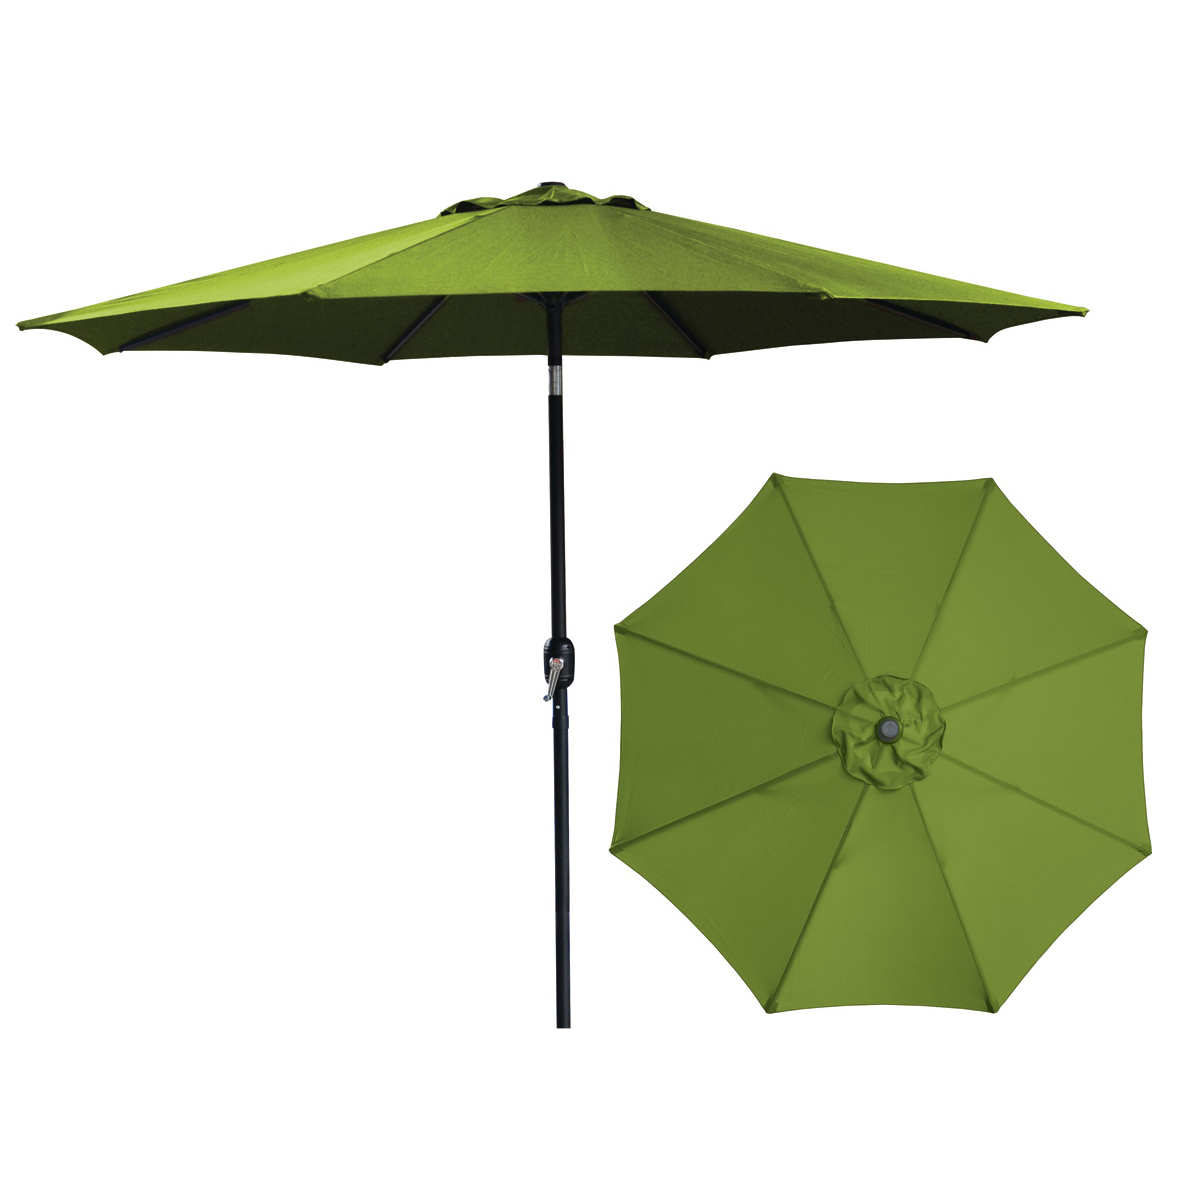 Picture of Seasonal Trends 62105 Crank Umbrella, 92.9 in H, 107.9 in W Canopy, 107.9 in L Canopy, Round Canopy, Steel Frame